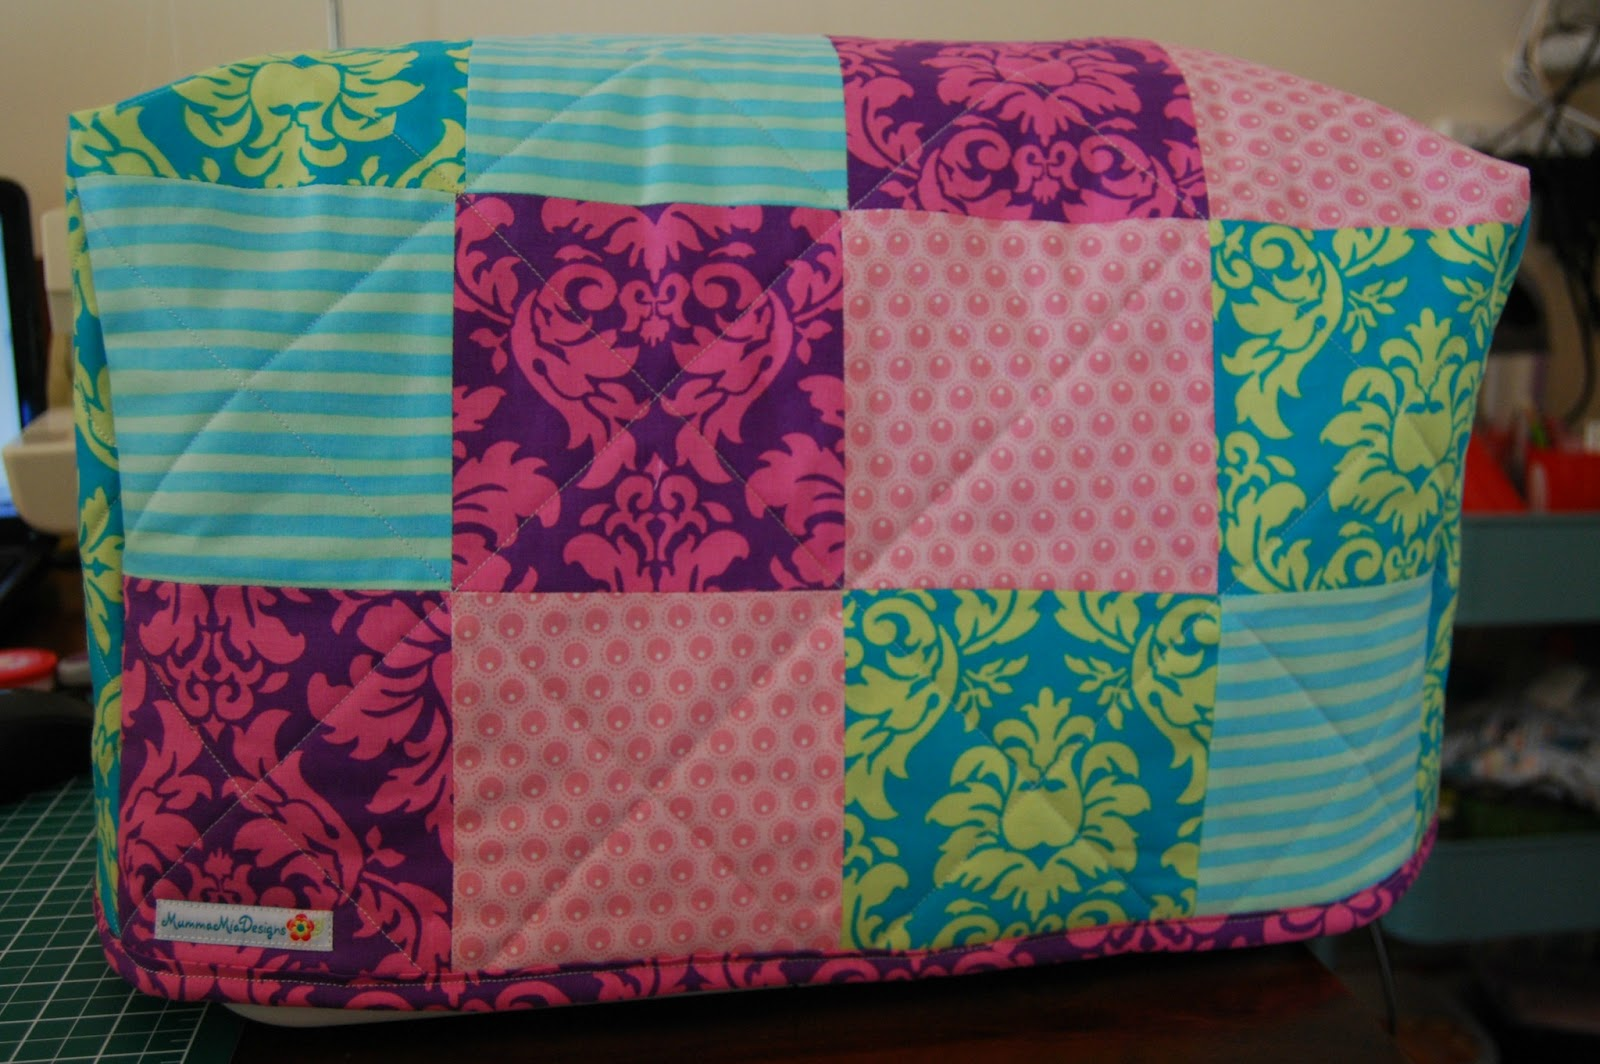 Quilted Sewing Machine Covers - Made By You! - Sew Delicious